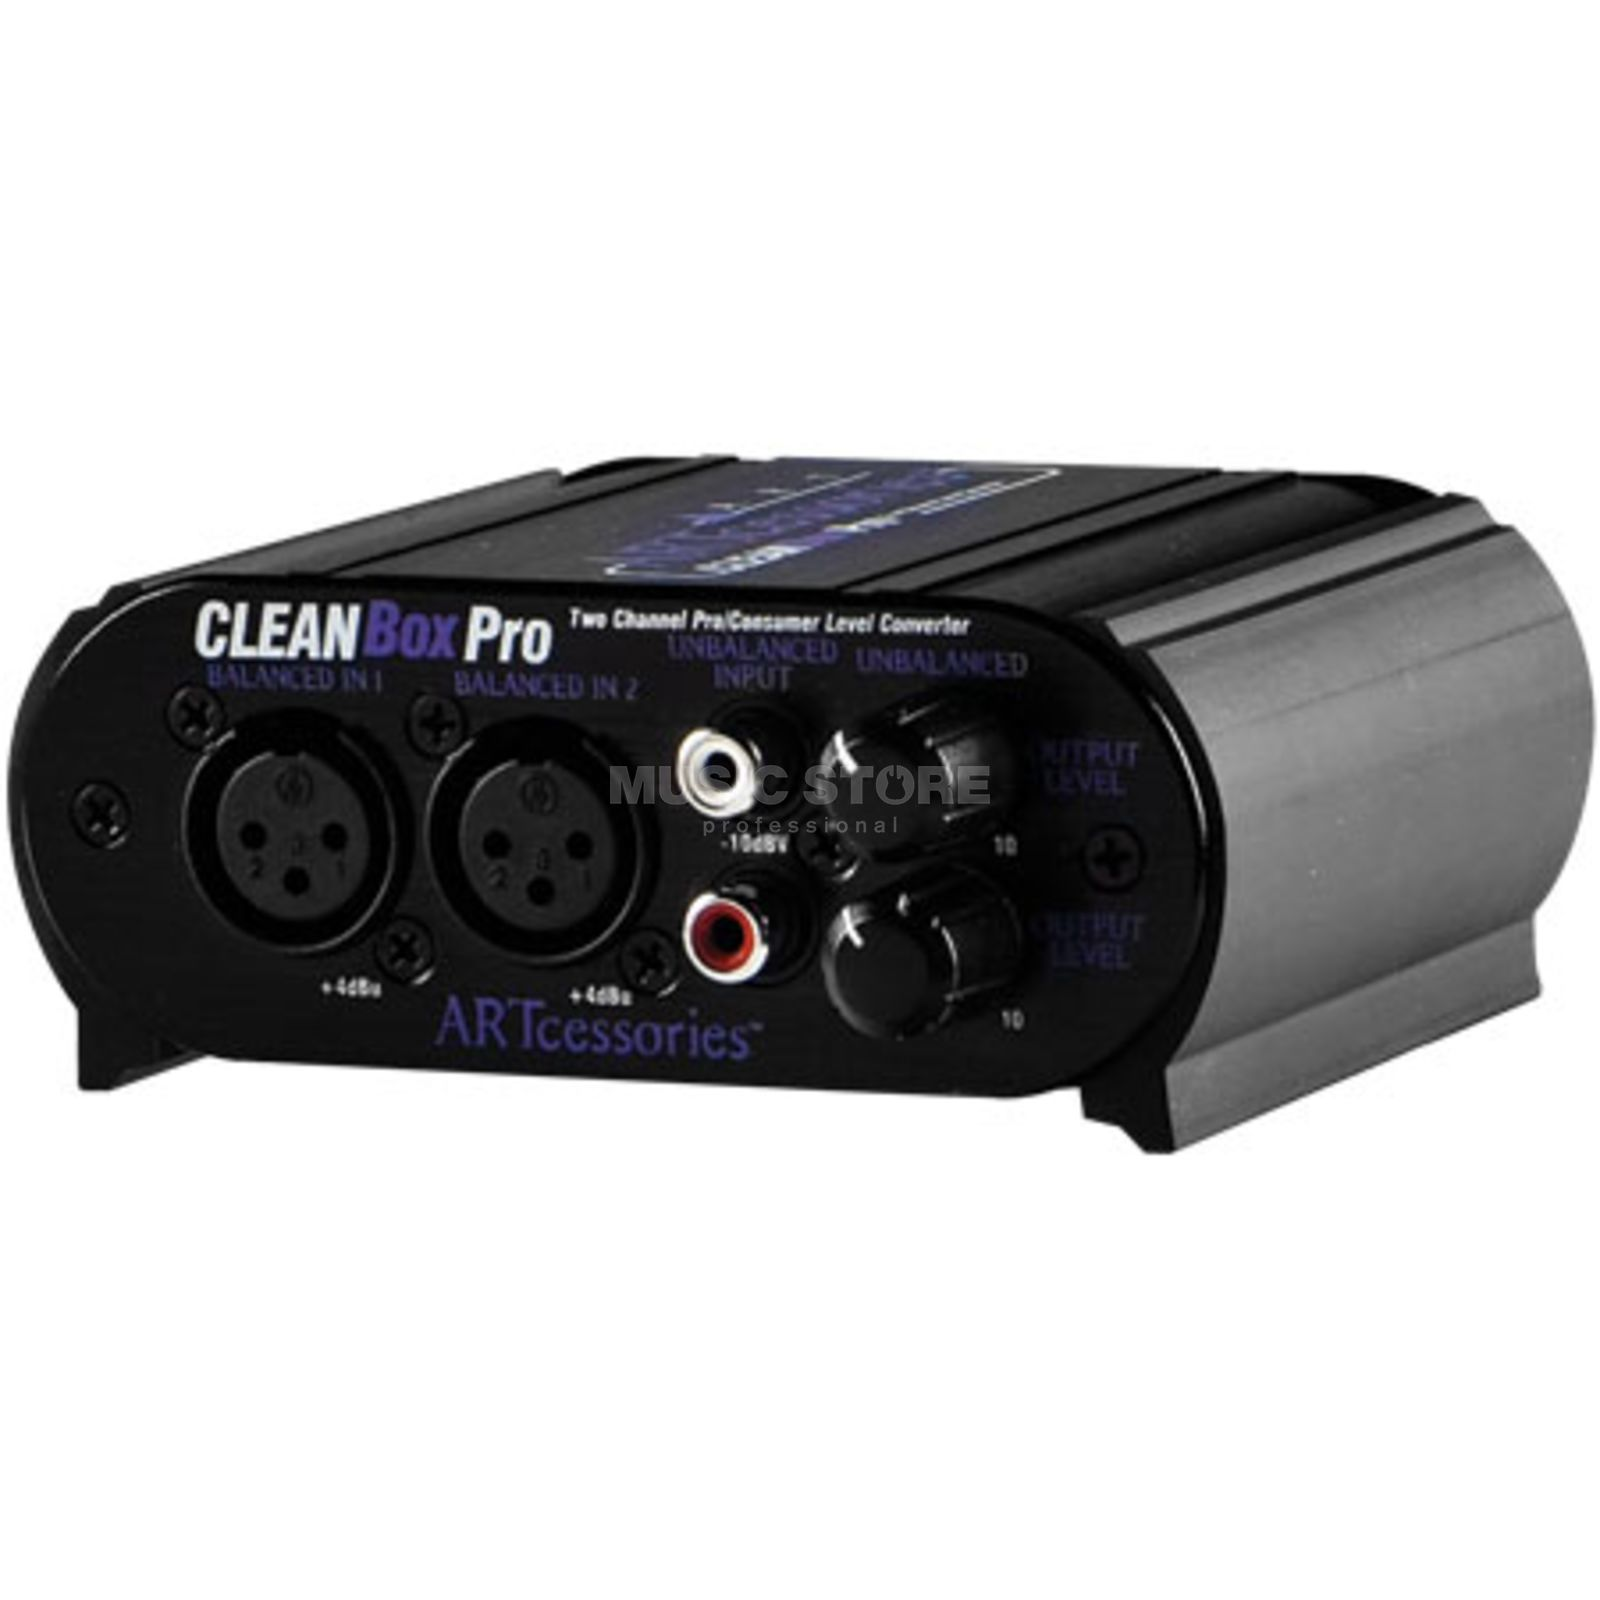 ART Applied Research & Technology CLEANBox Pro Dual Channel Level Converter Produktbillede